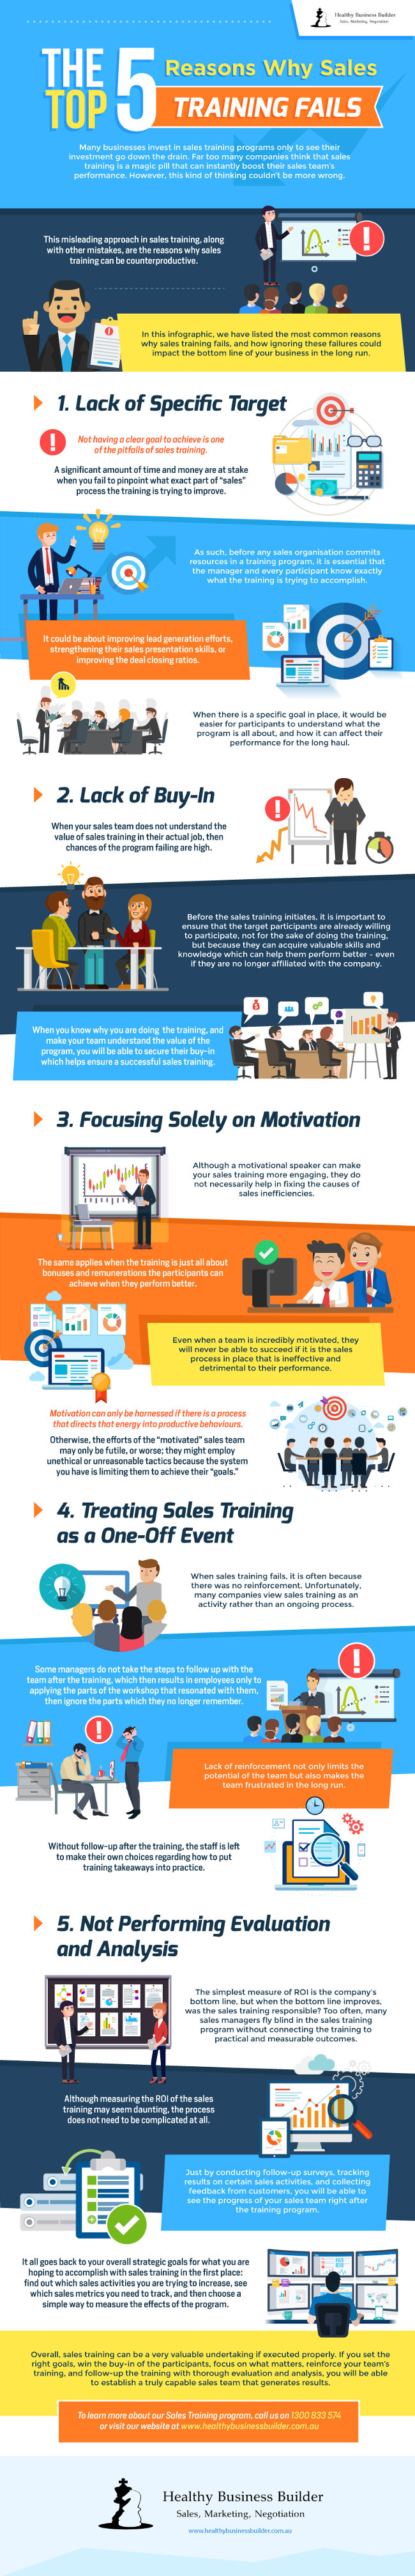 5 Sales Training Pitfalls You Need to Know About [Infographic]